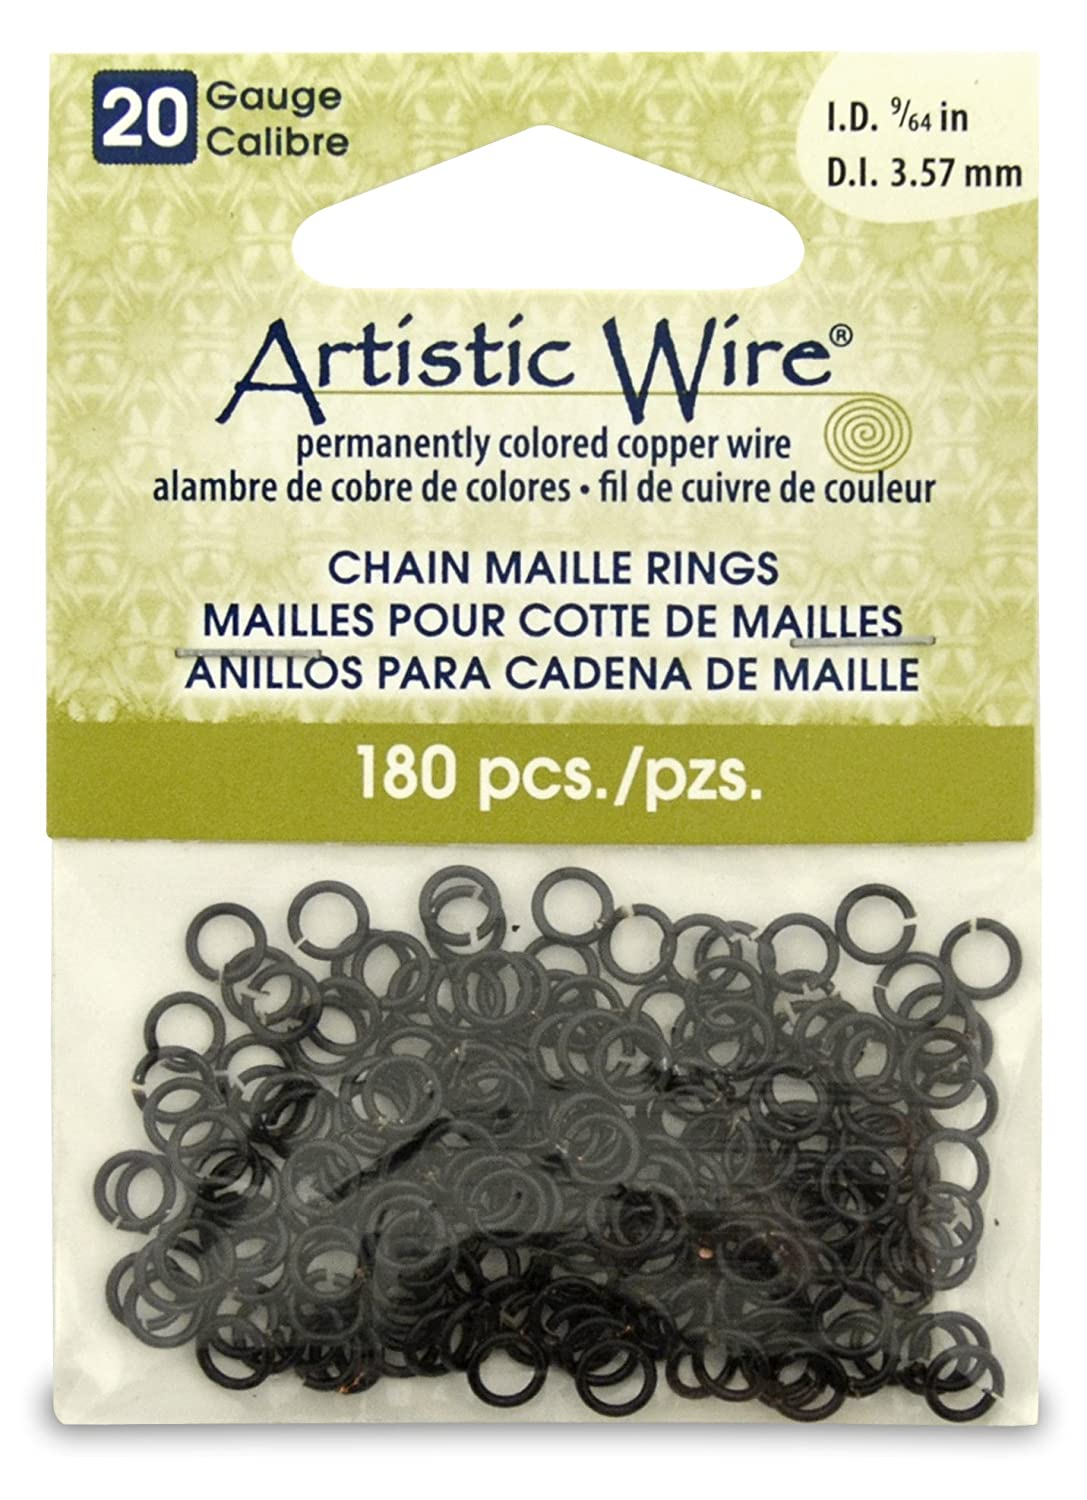 Artistic Wire Beadalon 9/64-inch 180 Piece 20-Gauge Chain Maille Rings, Black A314-20-02-05